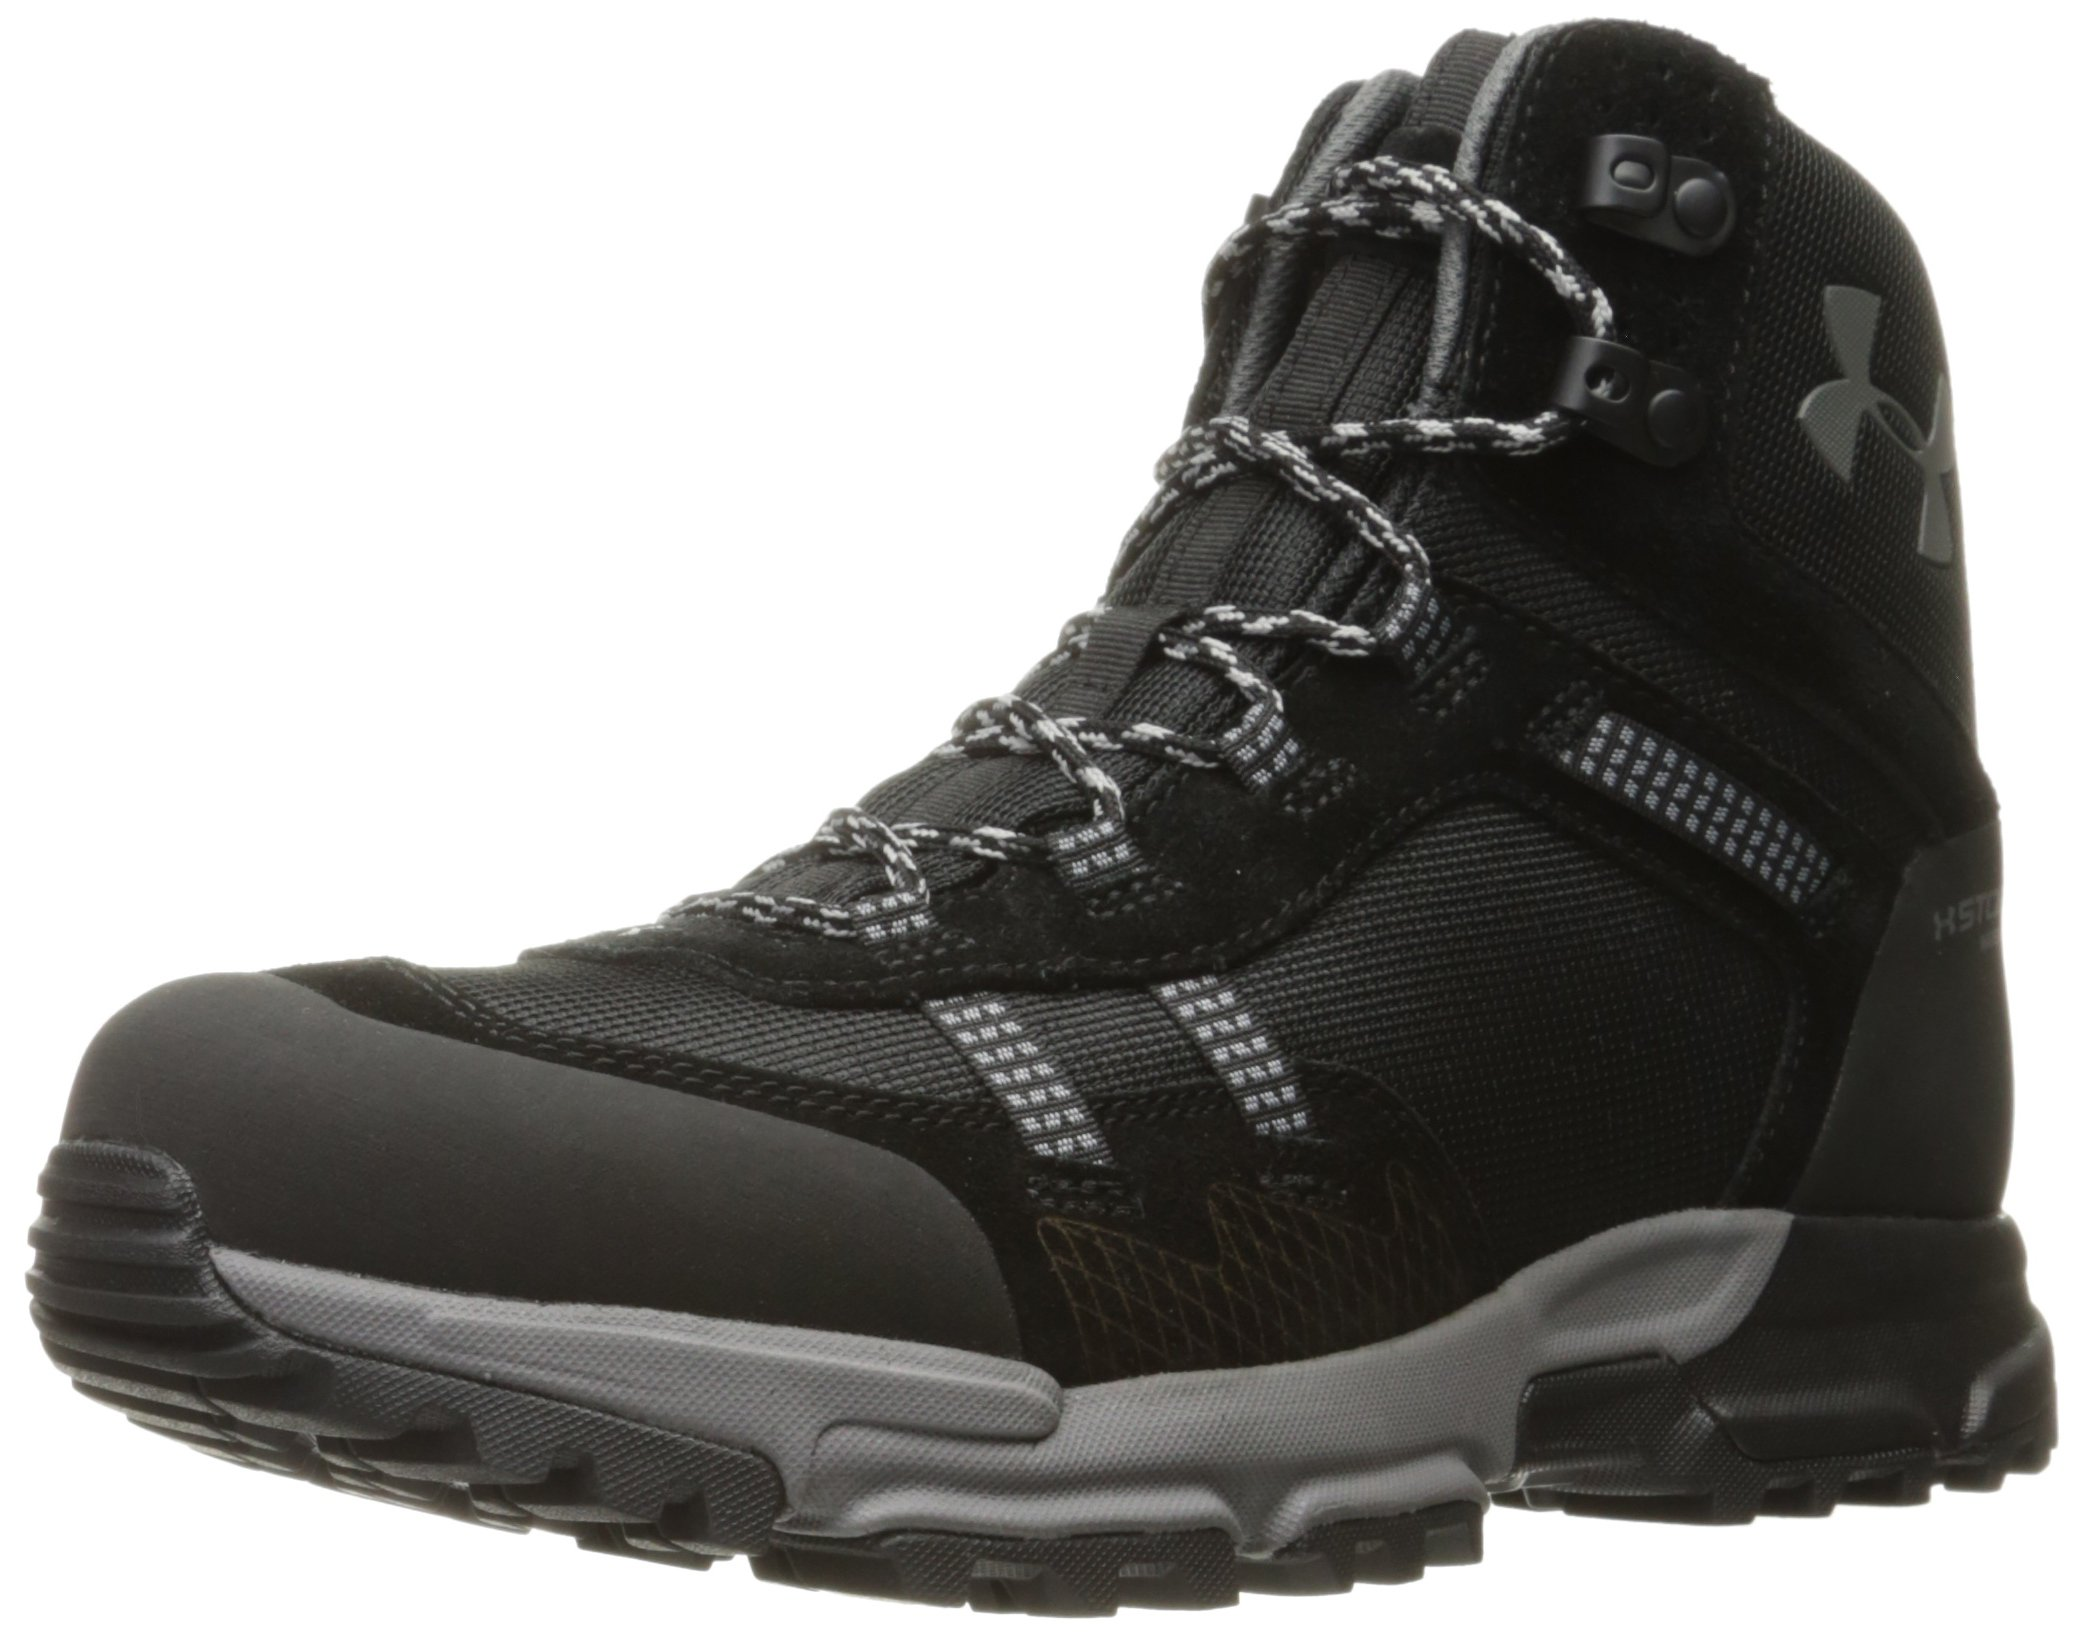 Under Armour Men's Post Canyon Mid Waterproof Hiking Boot, Black (001)/Black, 9.5